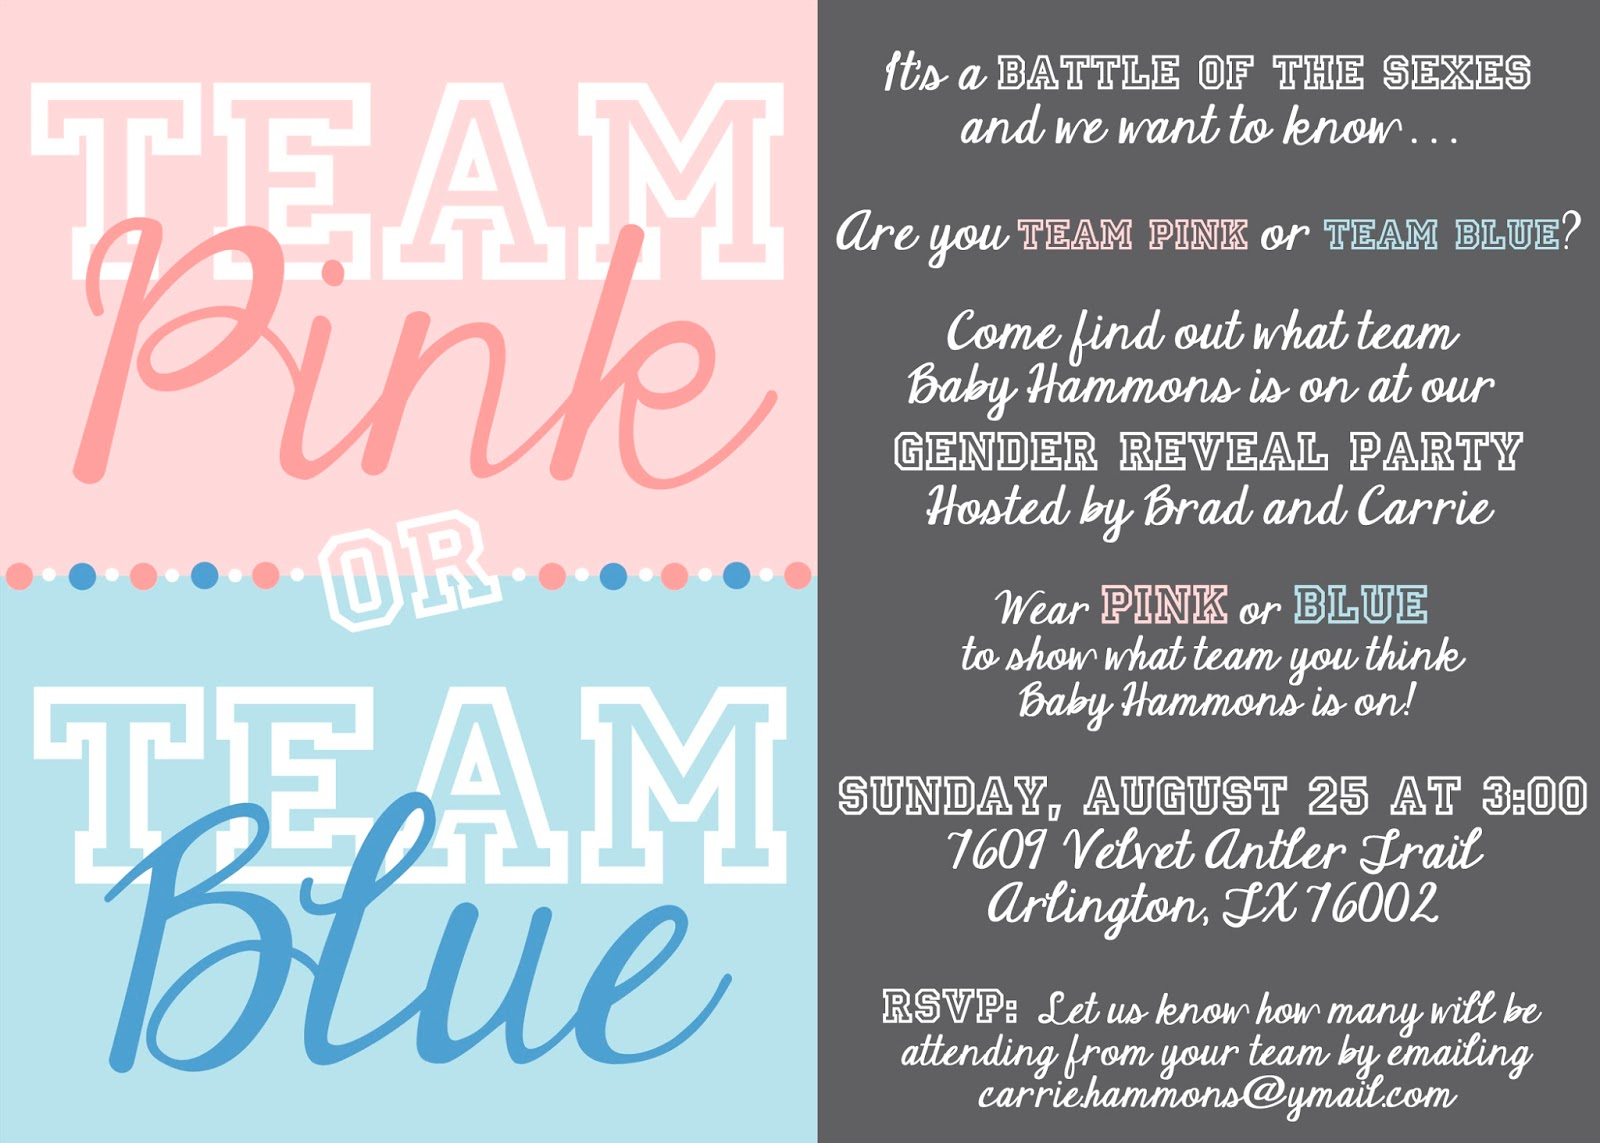 Free Printable Gender Reveal Party Invitations as nice invitations example